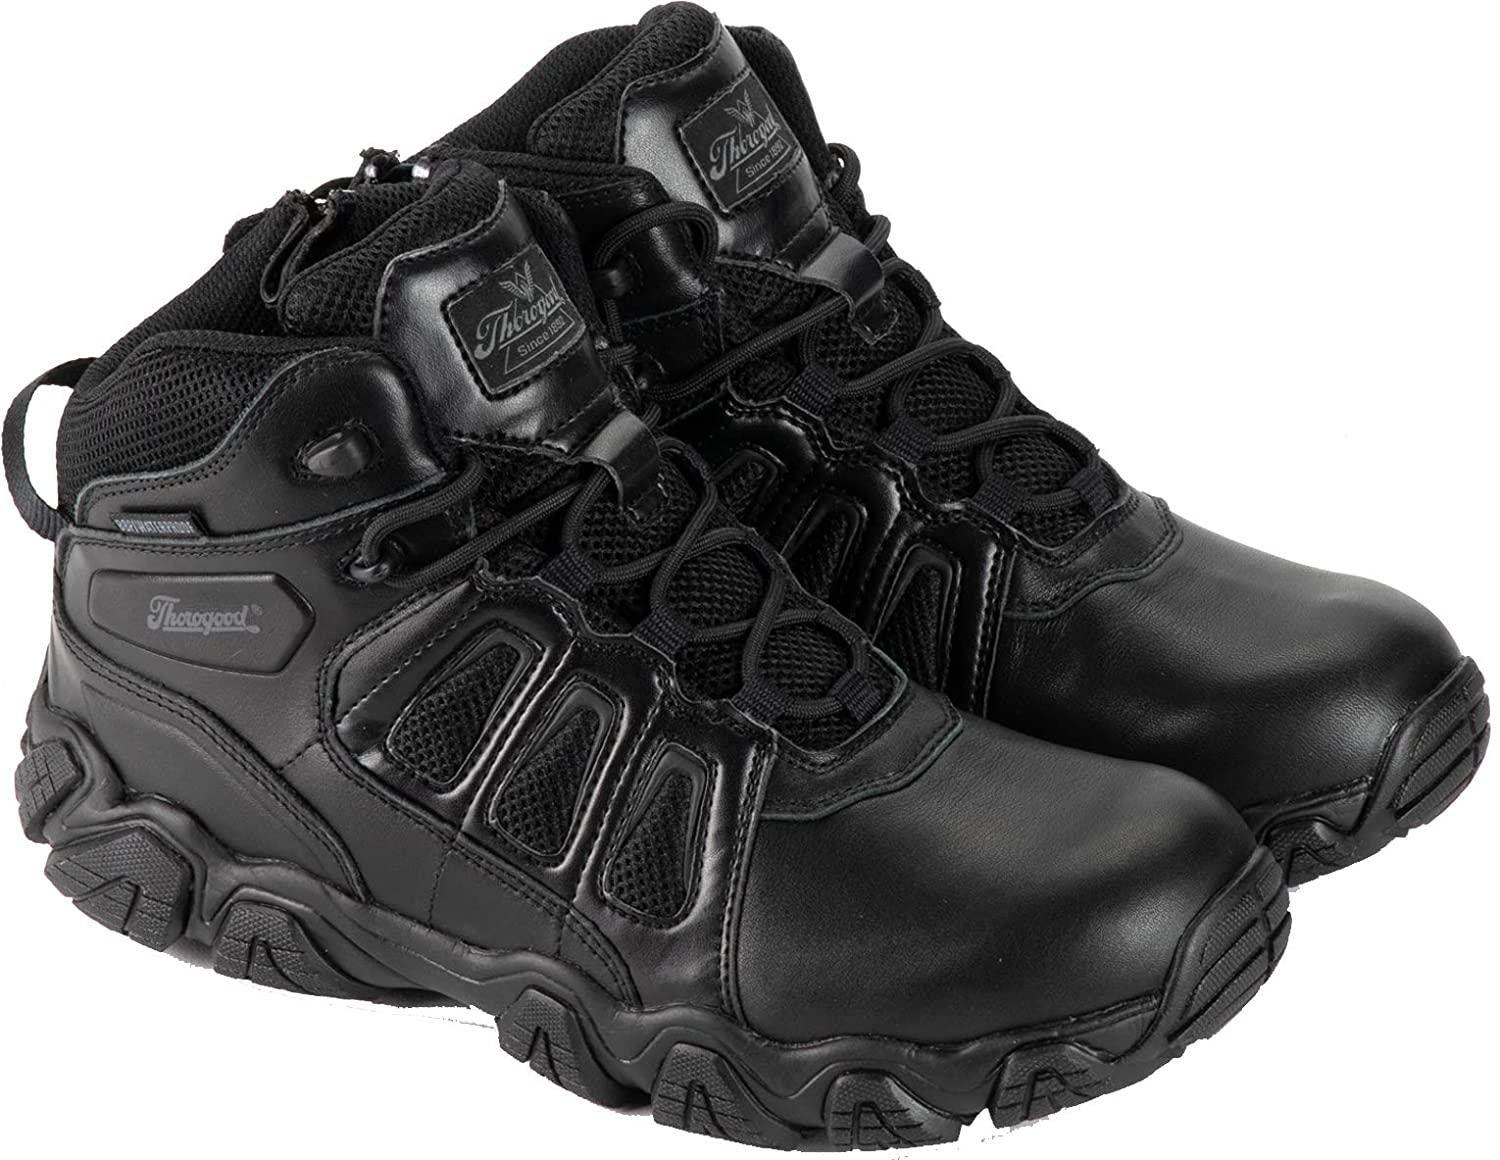 Thorogood Men's Crosstrex Limited Special Price Polishable Toe Cheap mail order specialty store Zip Waterpro Side – BBP